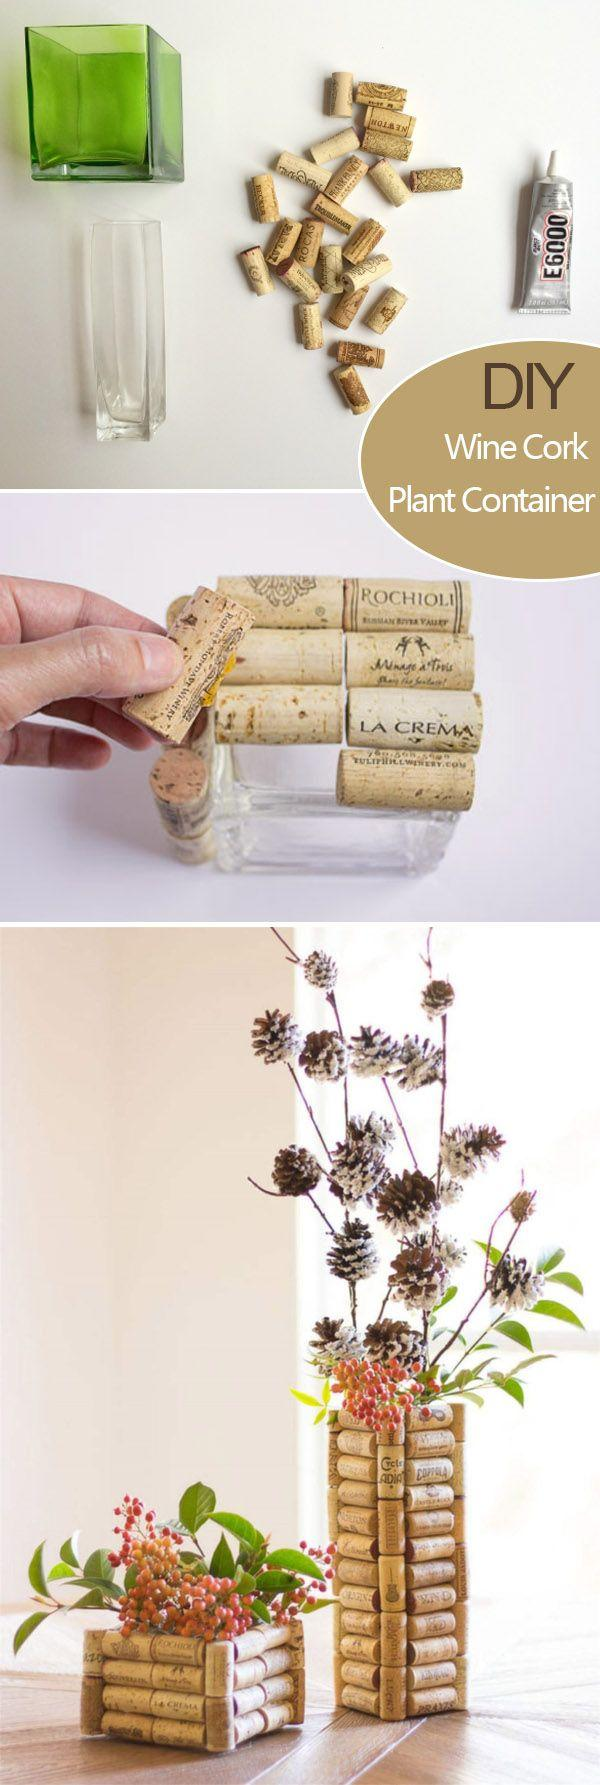 Boda - 7 Amazing DIY Wedding Decoration Ideas With Tutorials